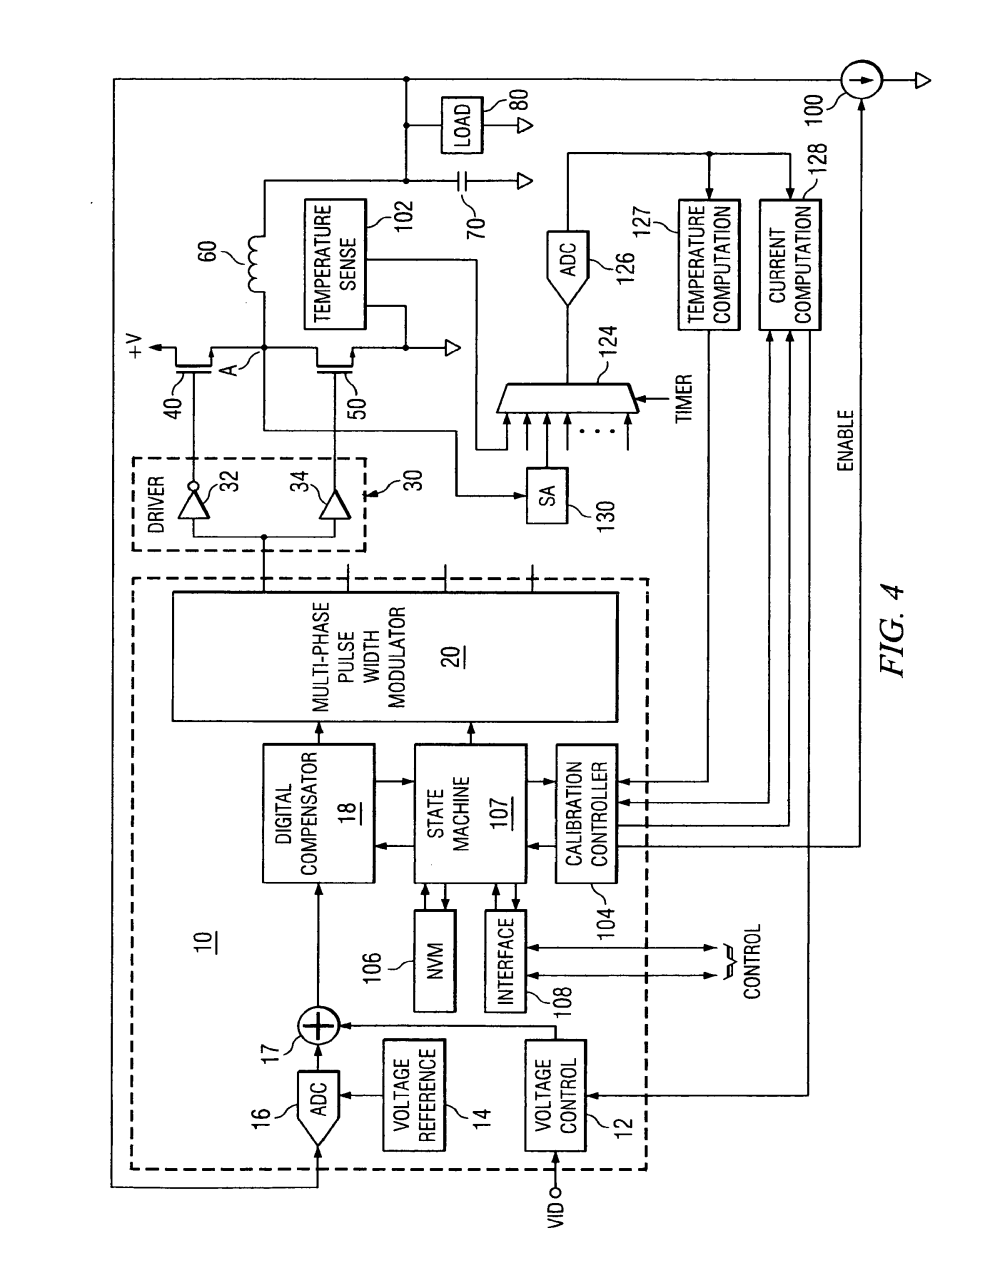 medium resolution of current law circuitdata mx tl calibration with lossless current on ac current sensor circuit diagram